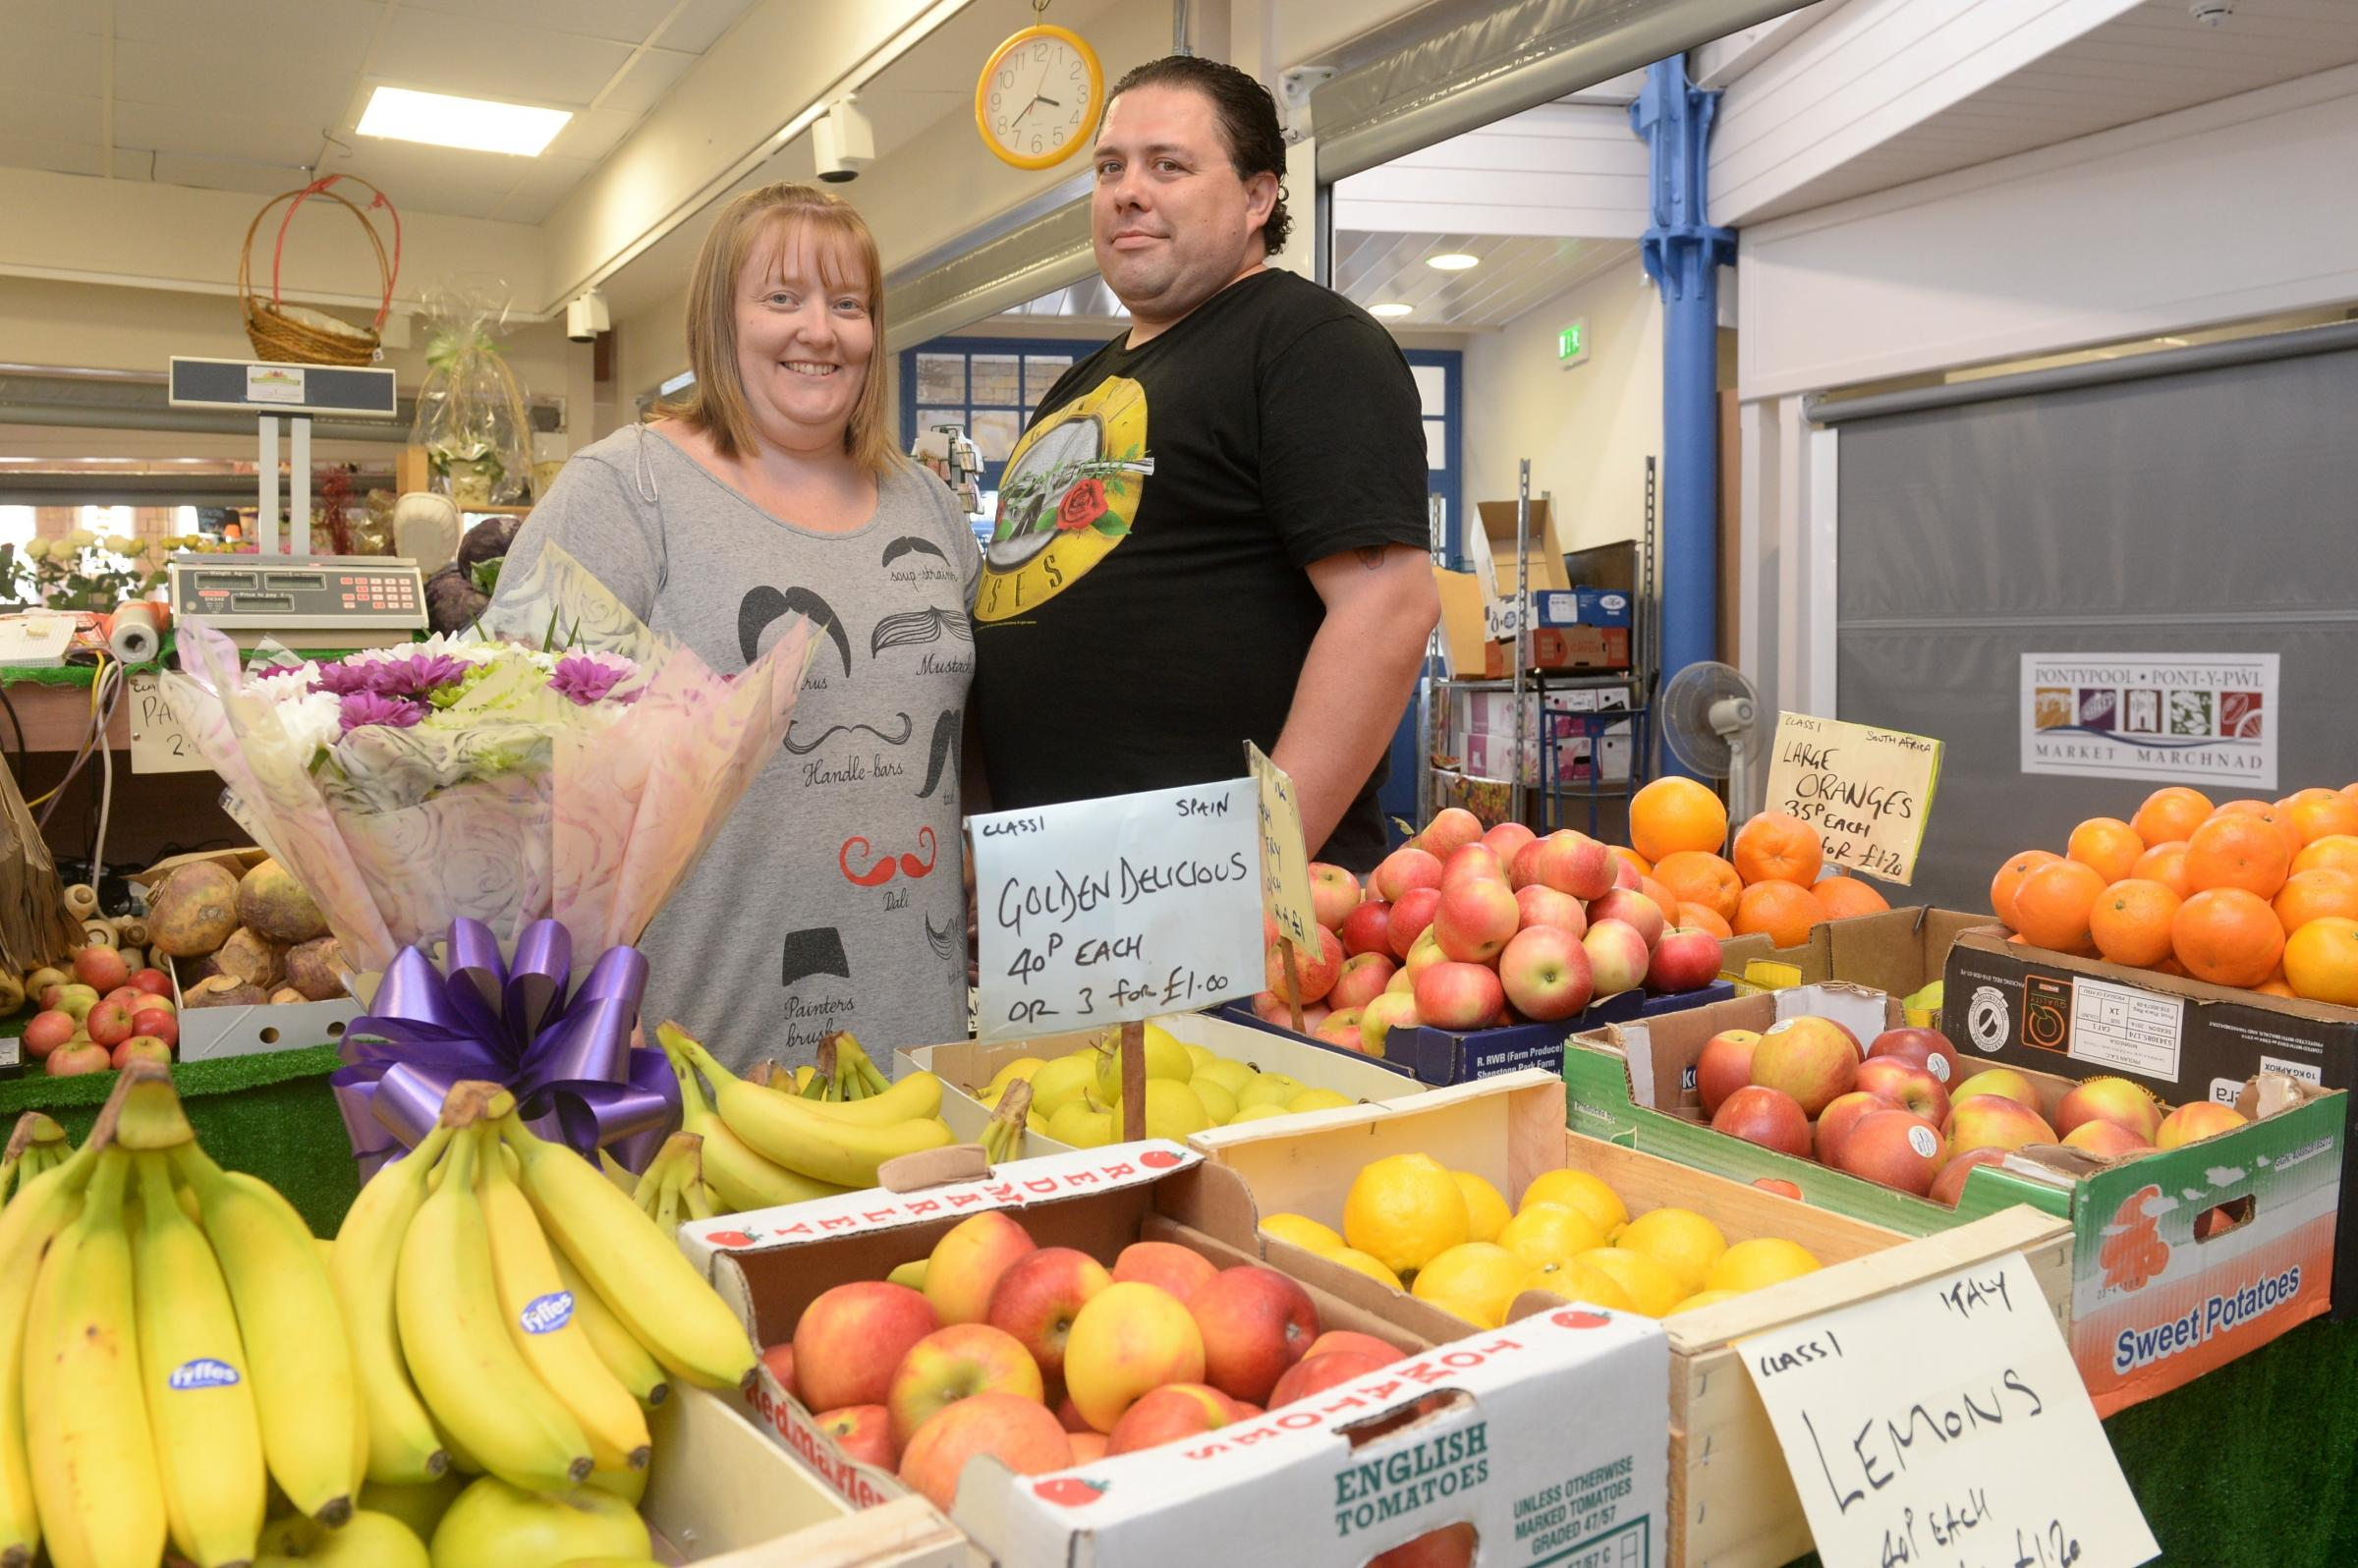 New Traders at Pontypool Market. Pictured are Rhianne and Danny Harris, who run a fruit and veg stall alongside a flower stall in Pontypool Market. (9468565)